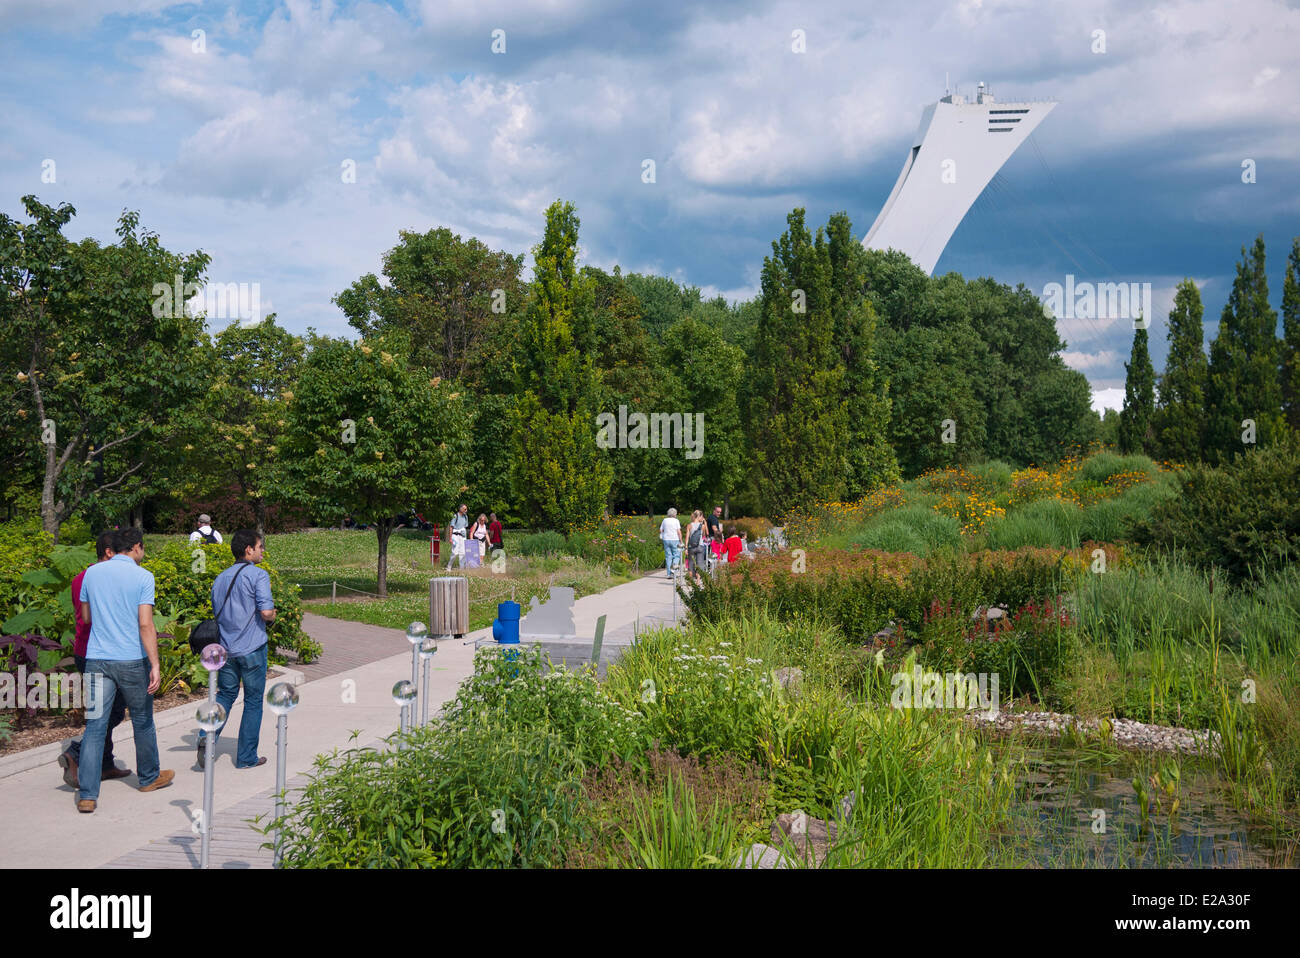 Canada, Quebec Province, Montreal, Botanical Garden and at the background the Olympic Stadium tower - Stock Image